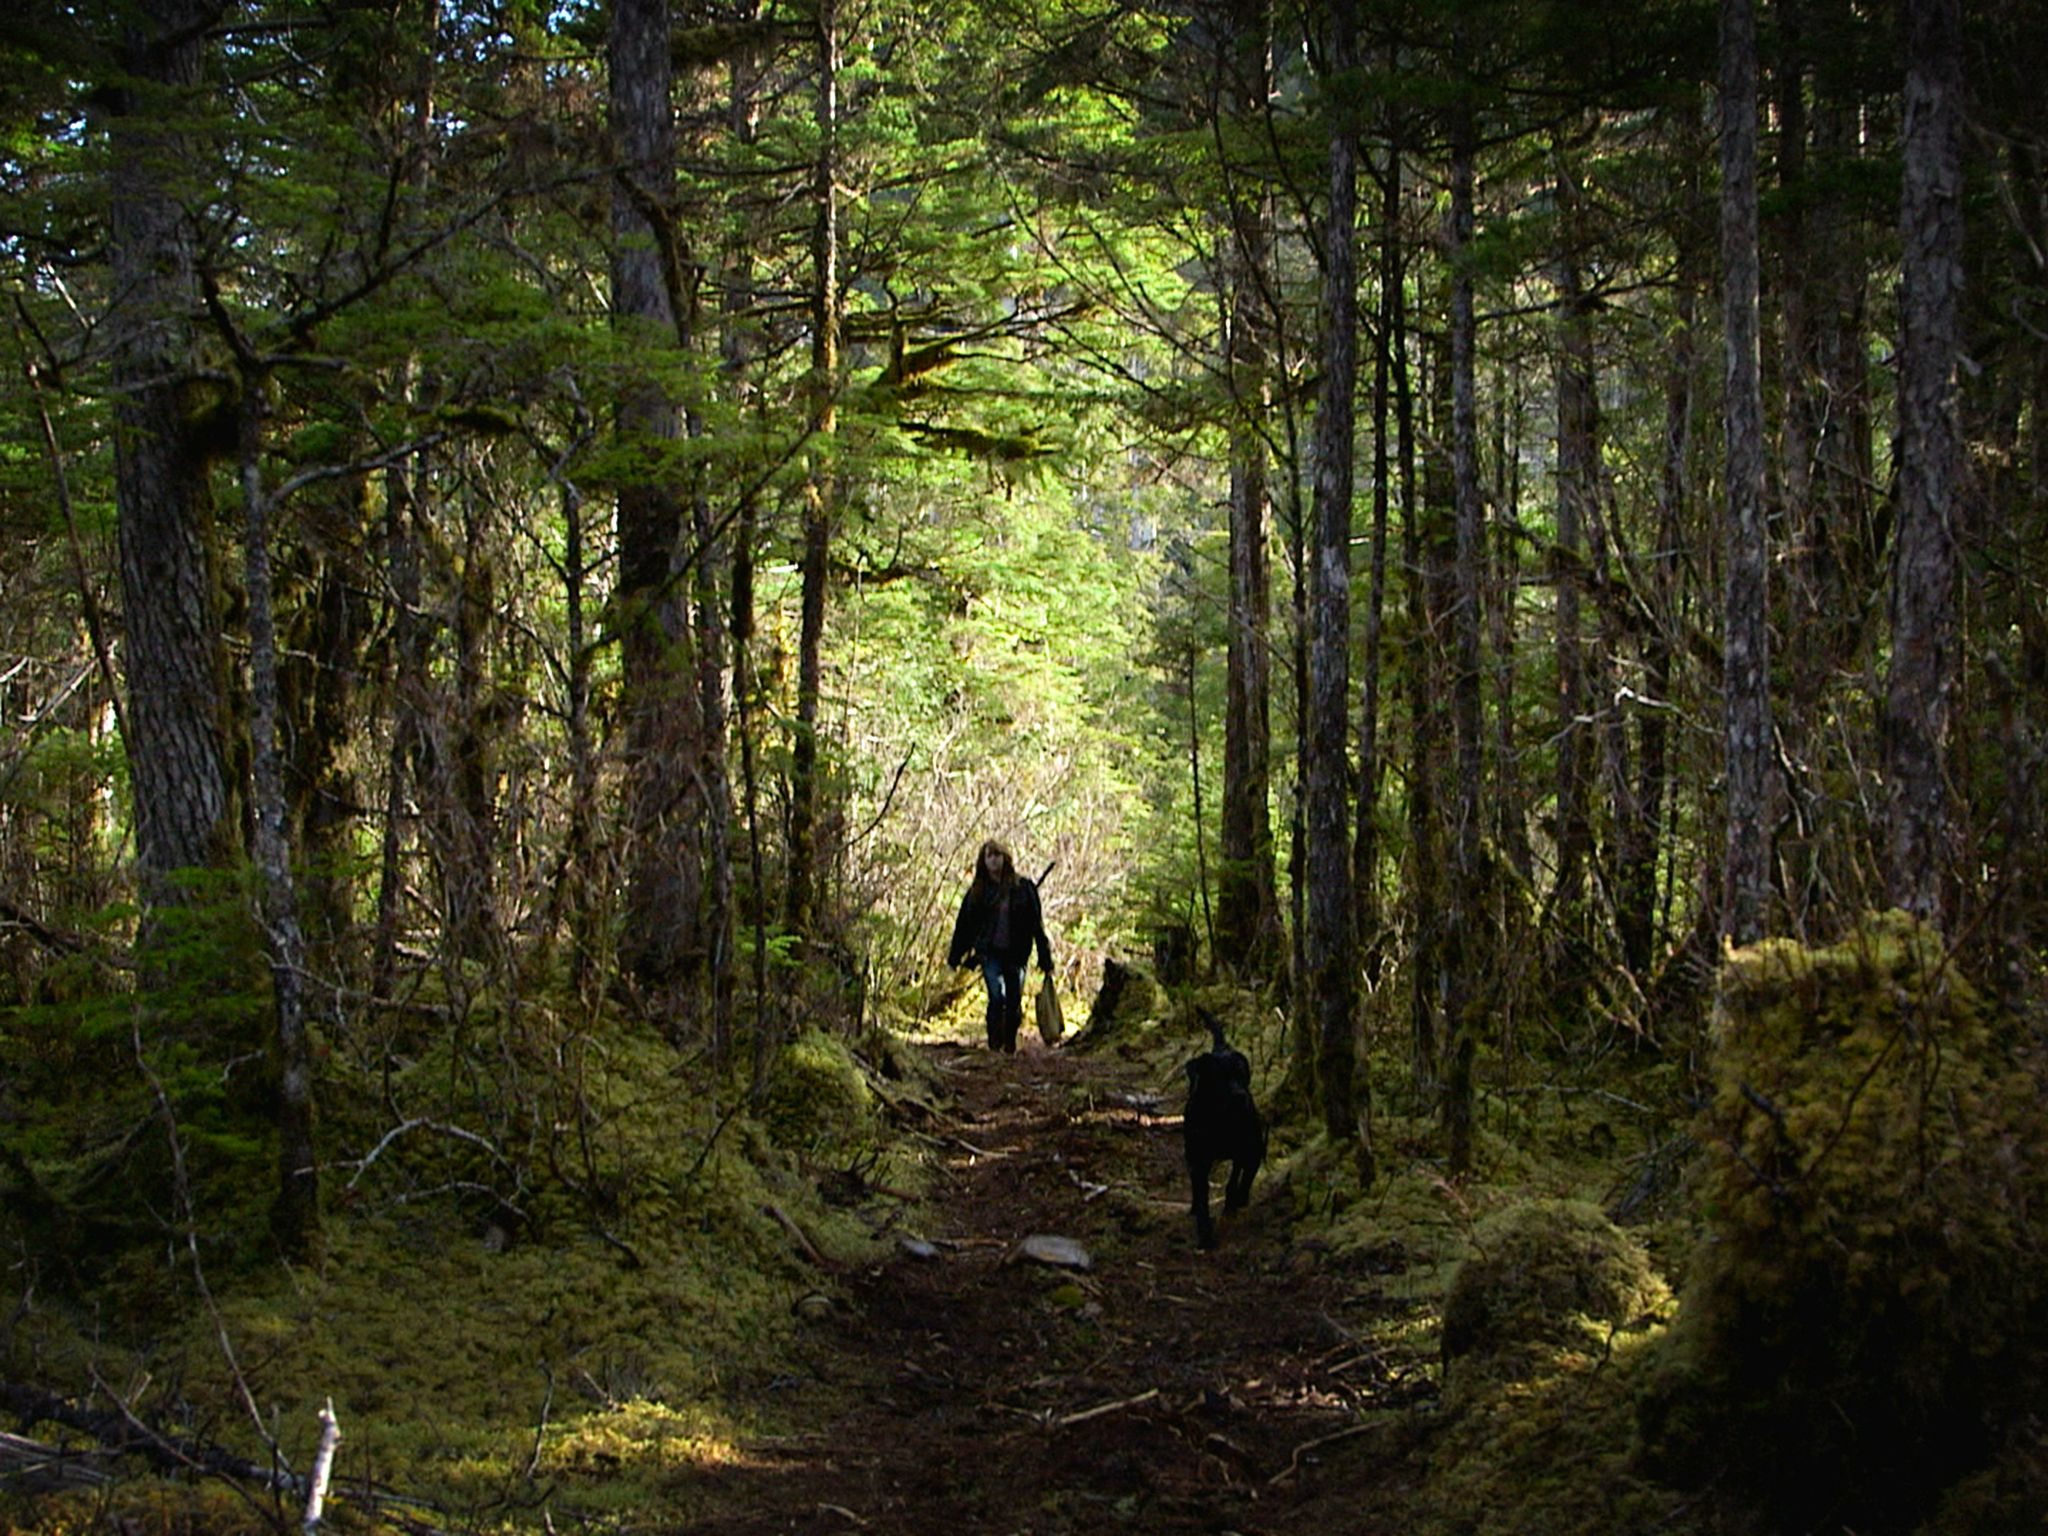 Port Protection, Alaska: Timbi walks through the woods with her dog, Smokey. This image is from P... [Фото дня - Ноябрь 2015]